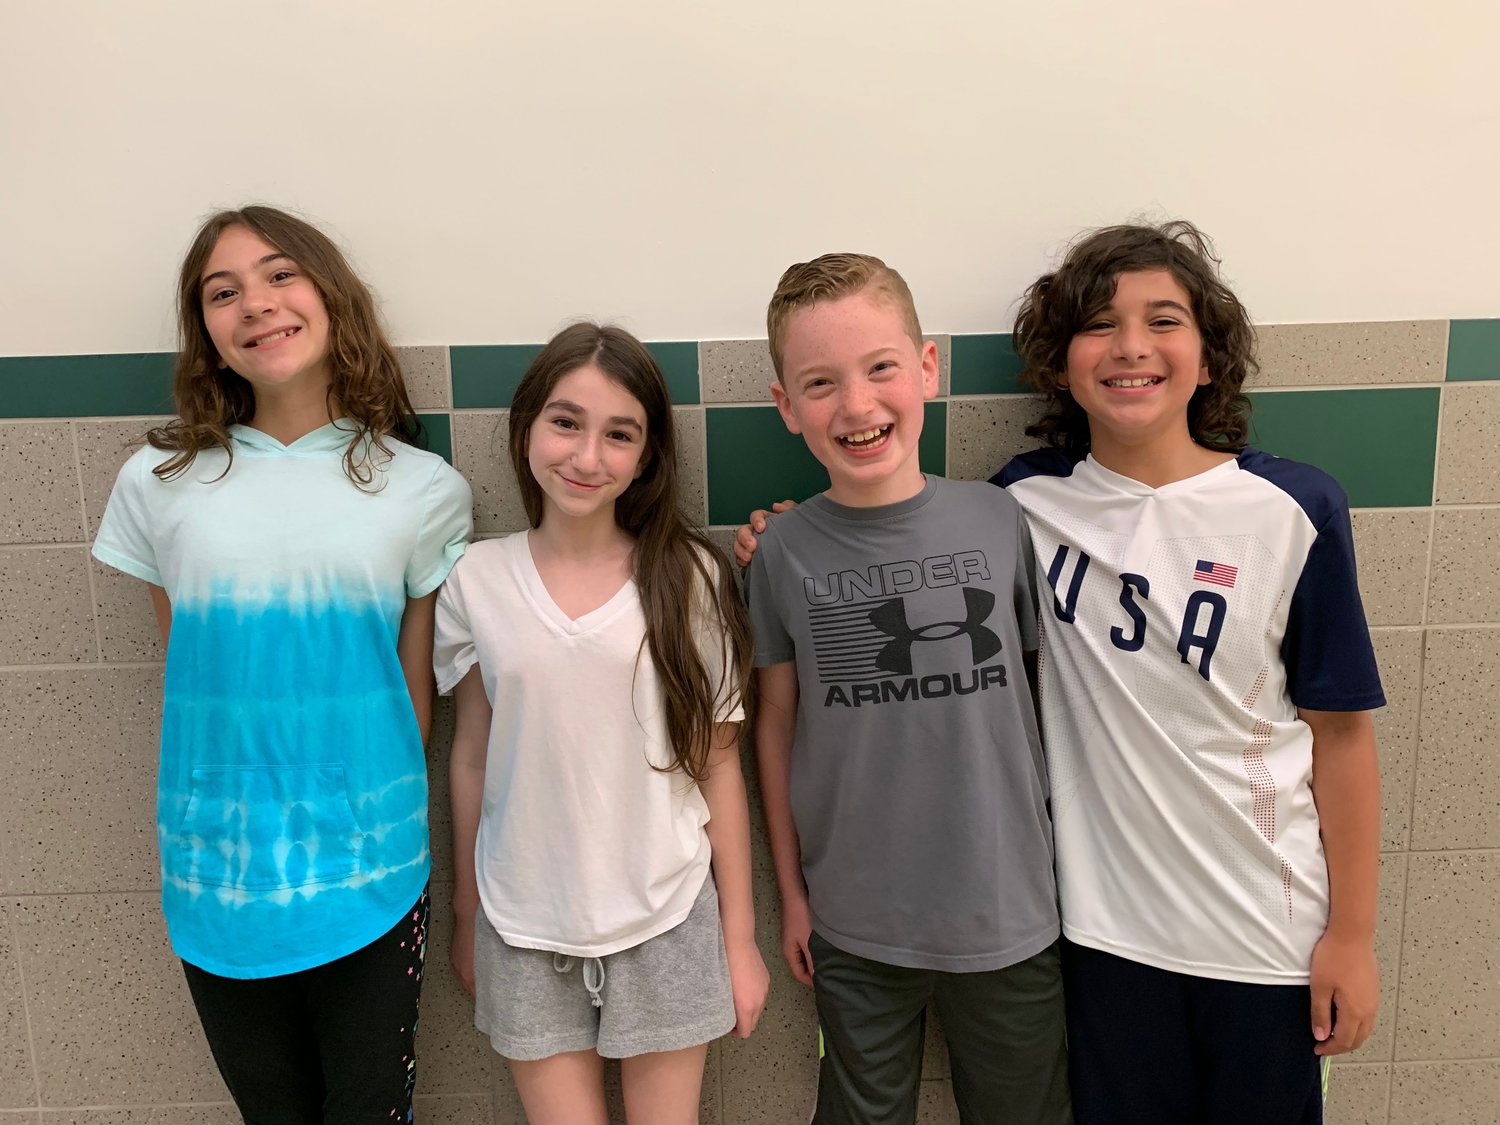 Hewlett Elementary School's Team BLEM finished first out of 267 teams on Long Island in a stock market game sponsored by the Security Industry and Financial Markets Association. From left were fifth-graders Madison Miley, Hailey Erdos, Daniel Baum and Ryan Leguillow.